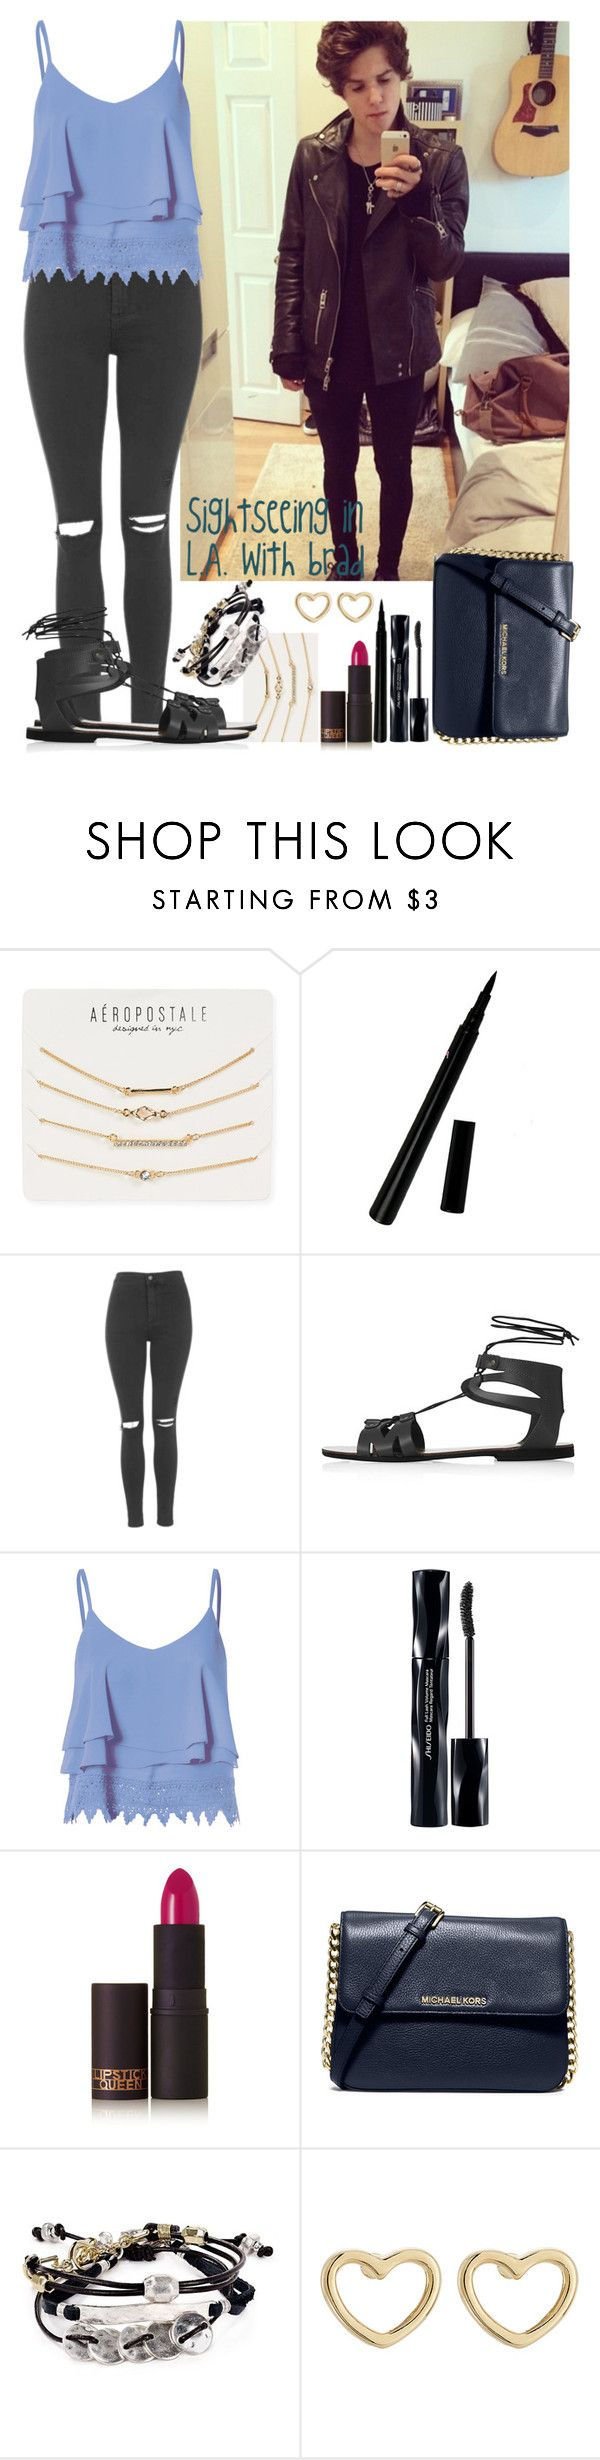 """""""Sightseeing in L.A. with Brad"""" by crazydirectionergirl ❤ liked on Polyvore featuring Aéropostale, Topshop, Glamorous, Shiseido, Lipstick Queen, MICHAEL Michael Kors, Robert Lee Morris and Marc by Marc Jacobs"""